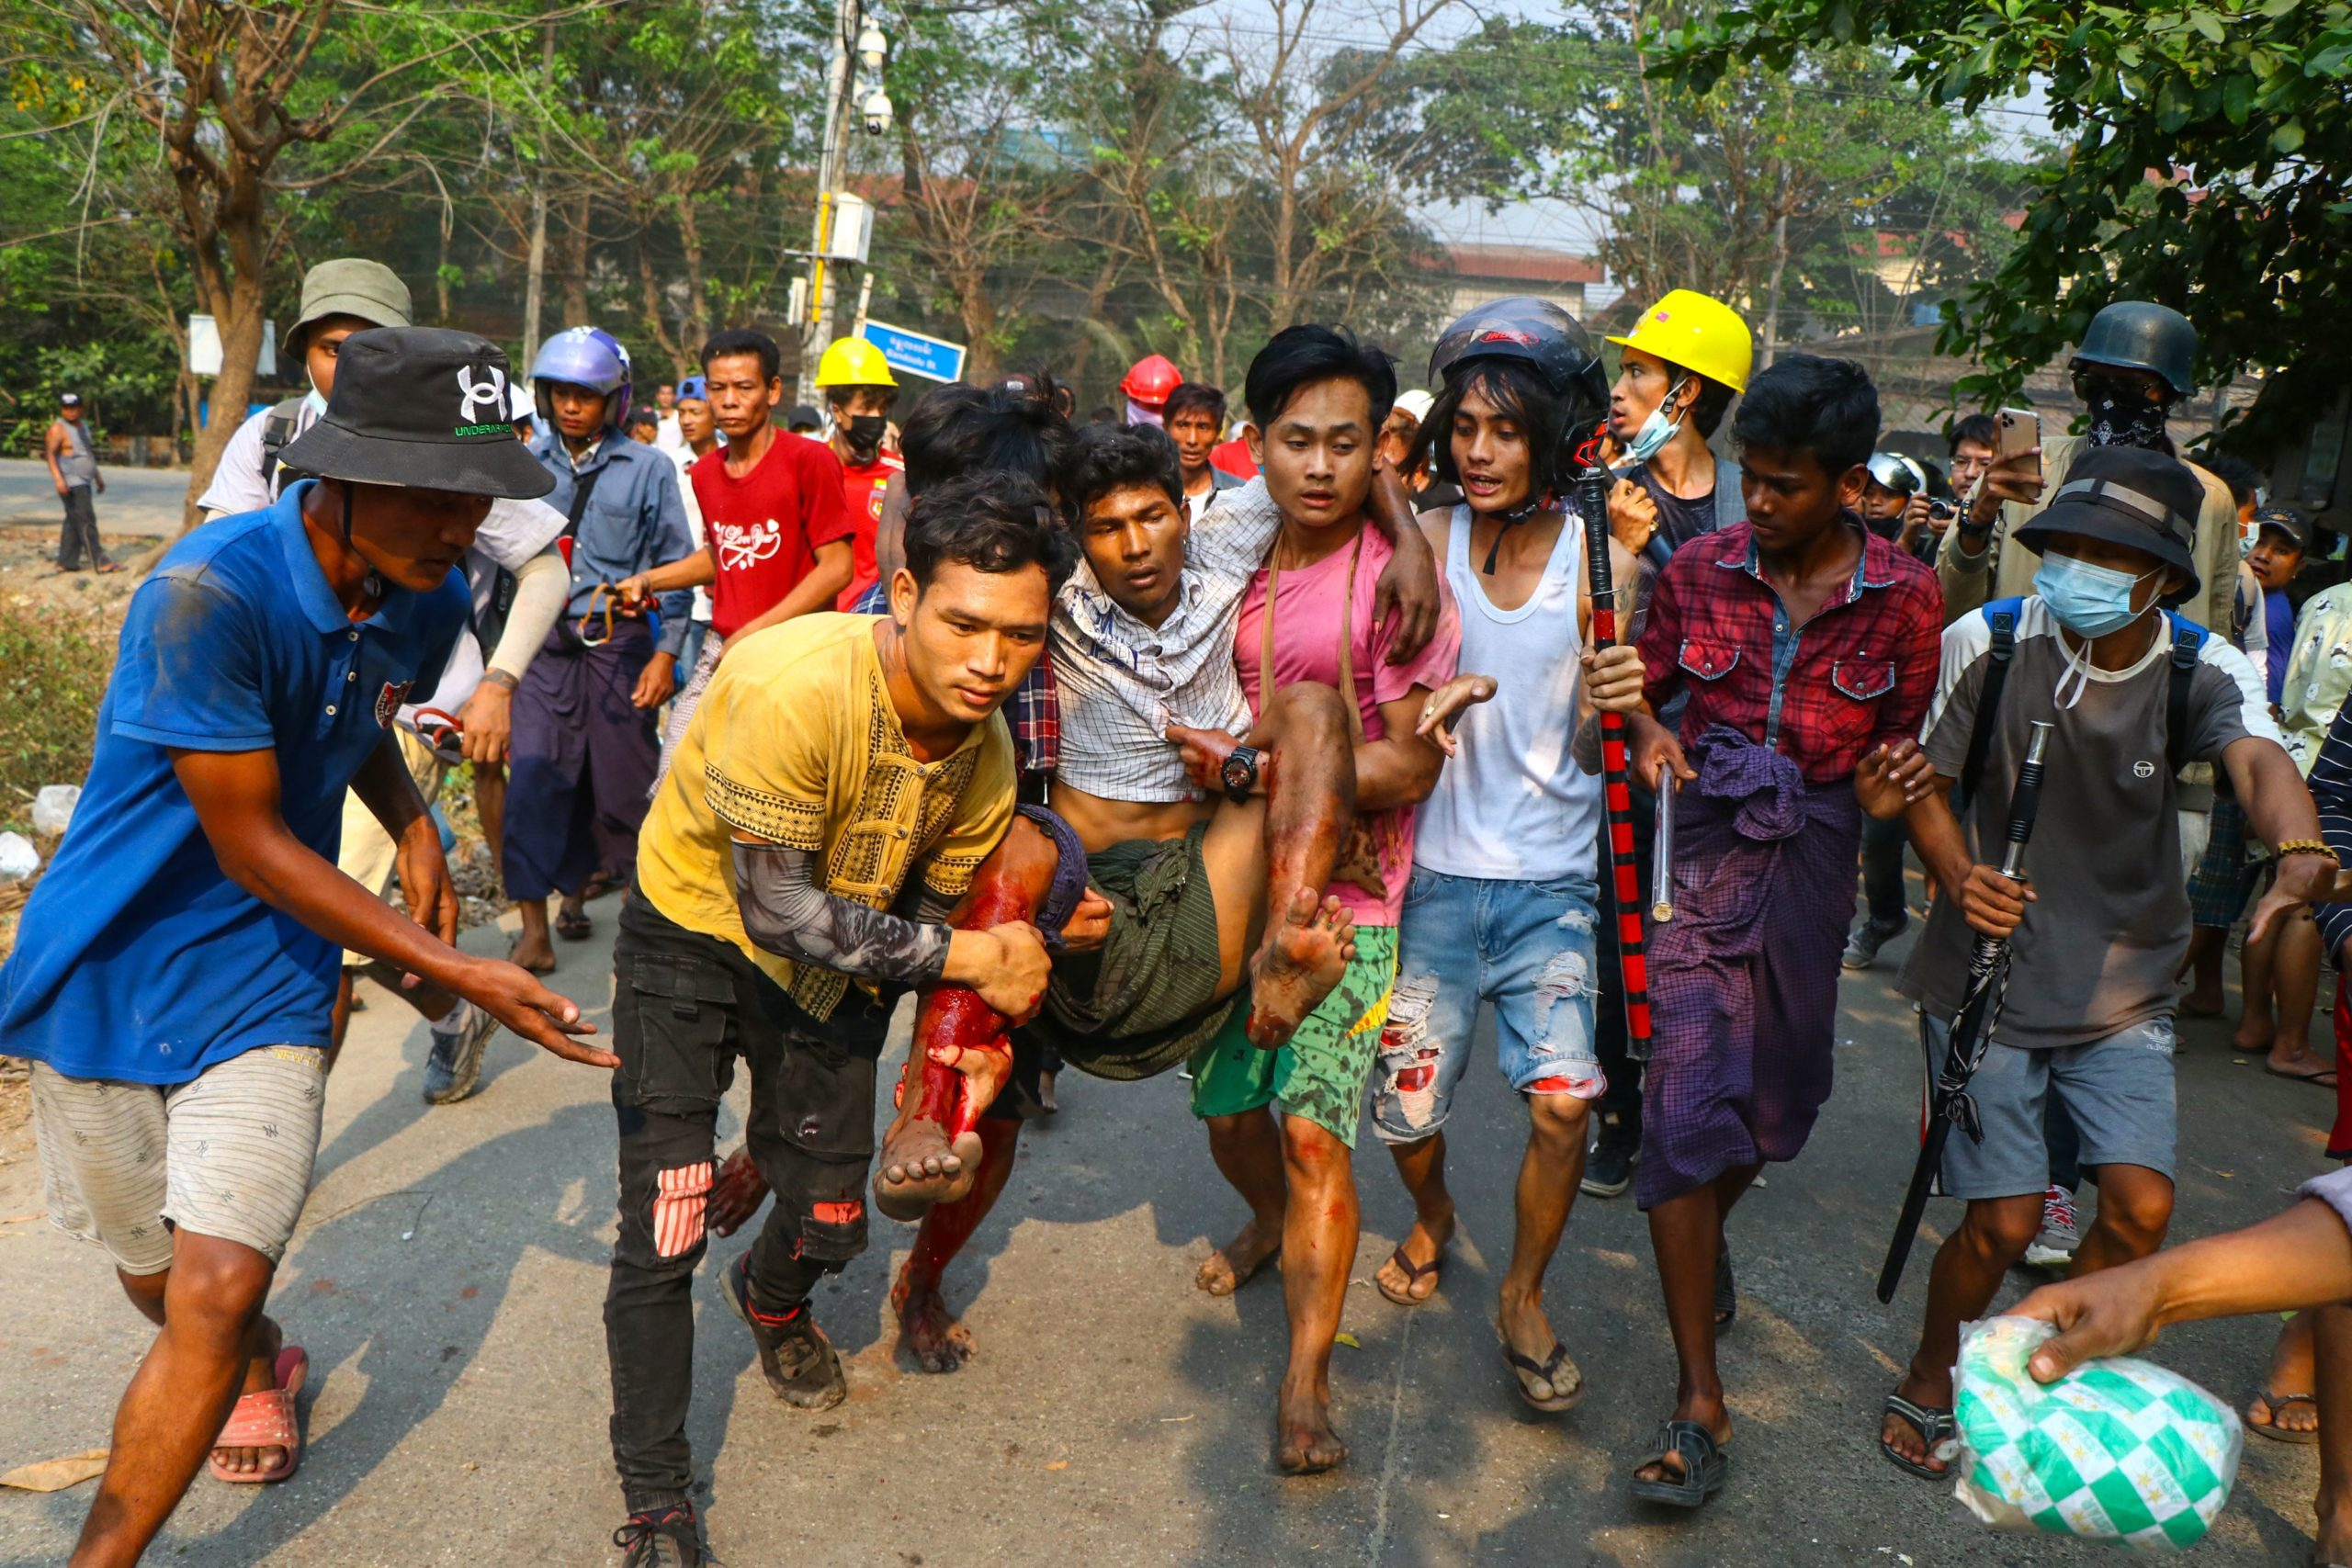 A resident, who was injured during a crackdown by security forces on demonstrations by protesters against the military coup, is carried to safety in Yangon's Hlaing Tharyar township on March 14, 2021. (STR/AFP via Getty Images)